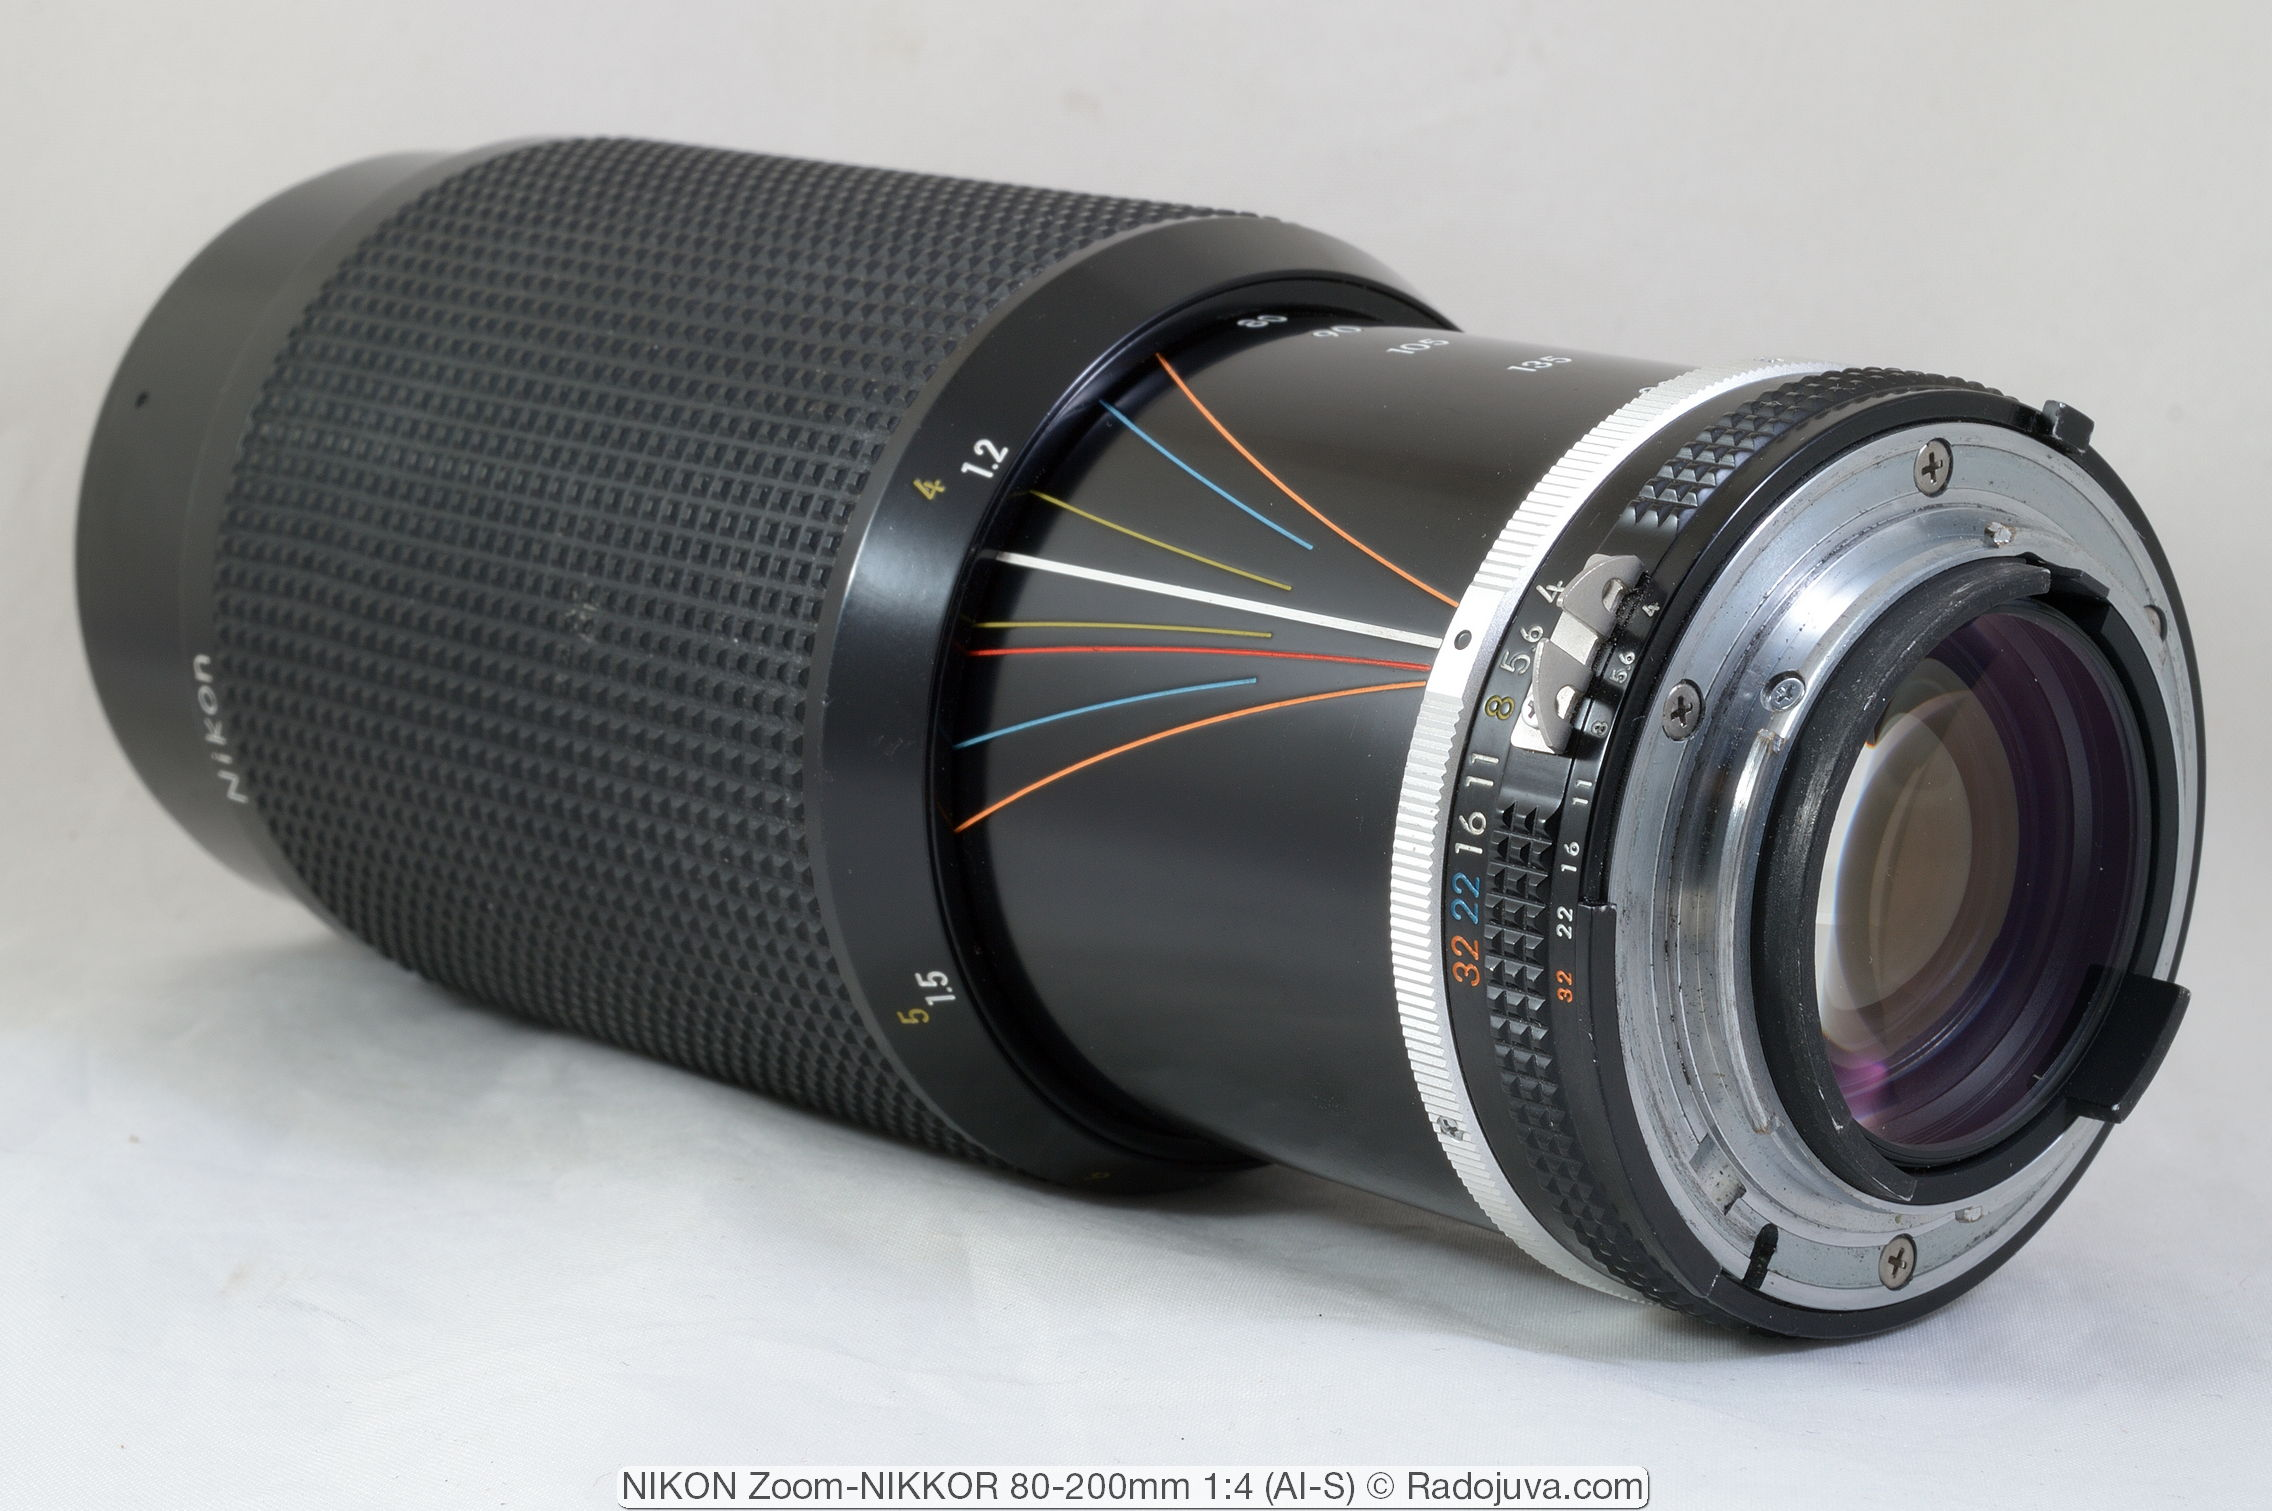 NIKON Zoom-NIKKOR 80-200mm 1:4 (AI-S)